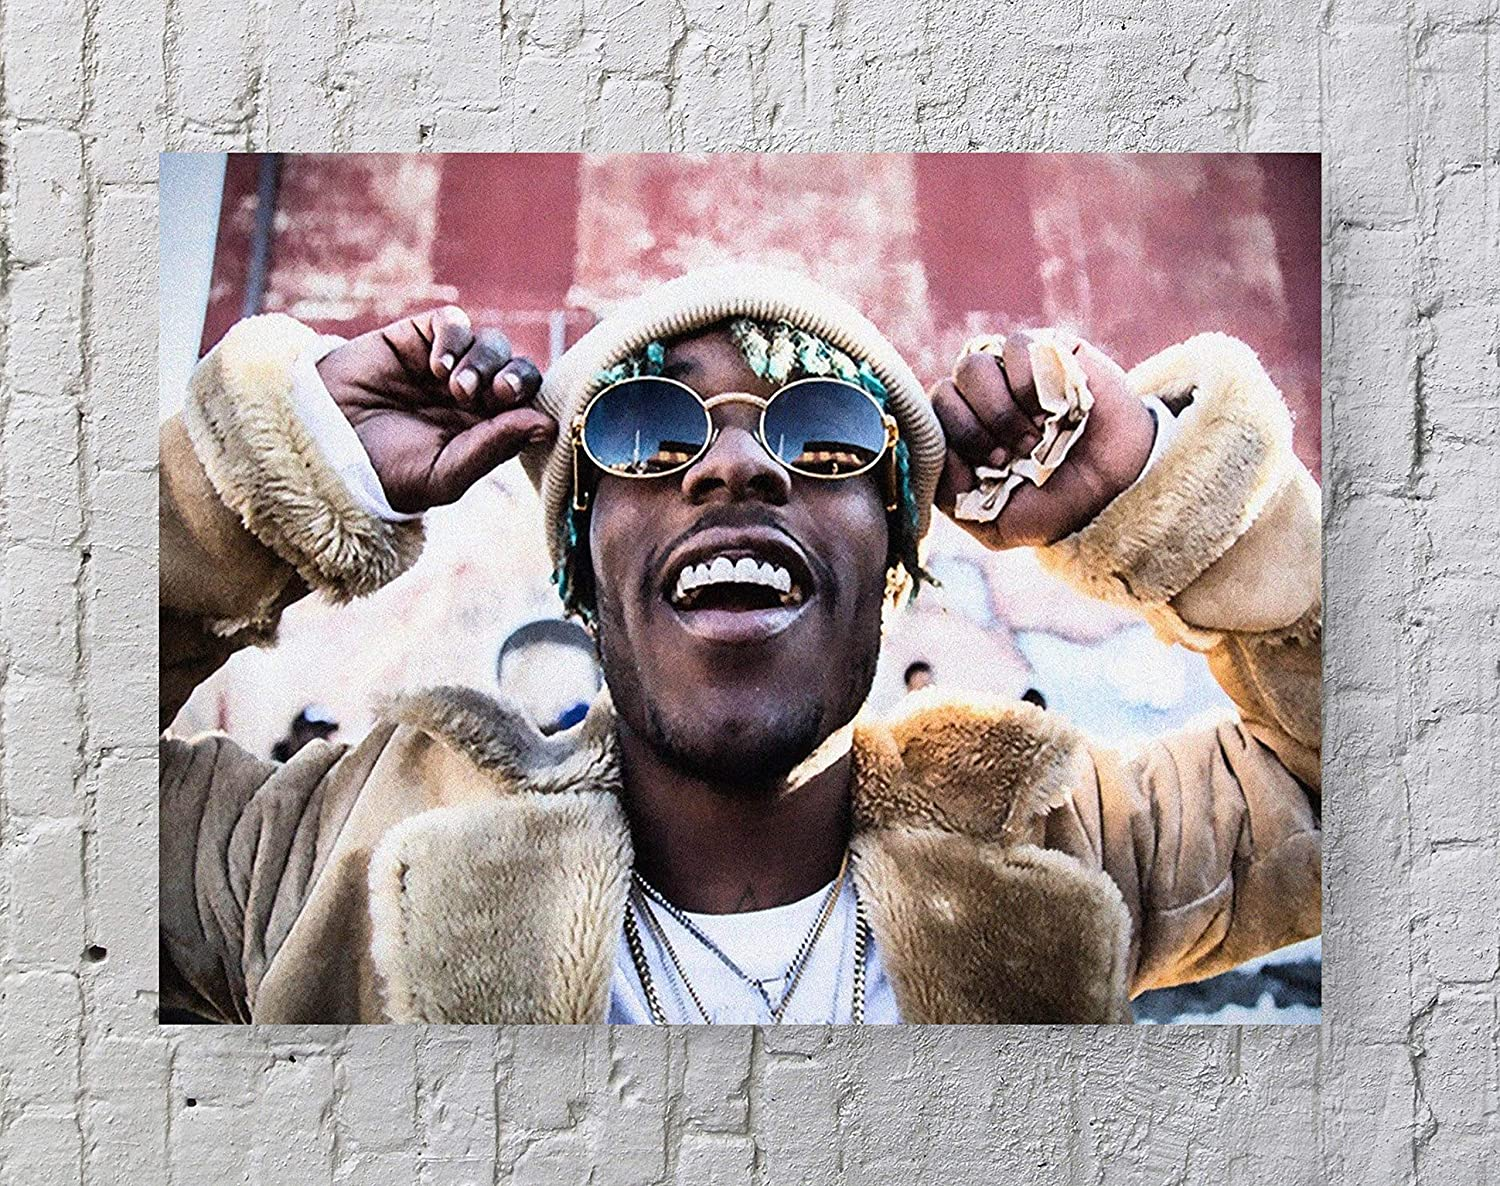 Lil Uzi Vert Poster Standard Size   18-Inches by 24-Inches   Lil Uzi Vert Rapper Wall Poster Print